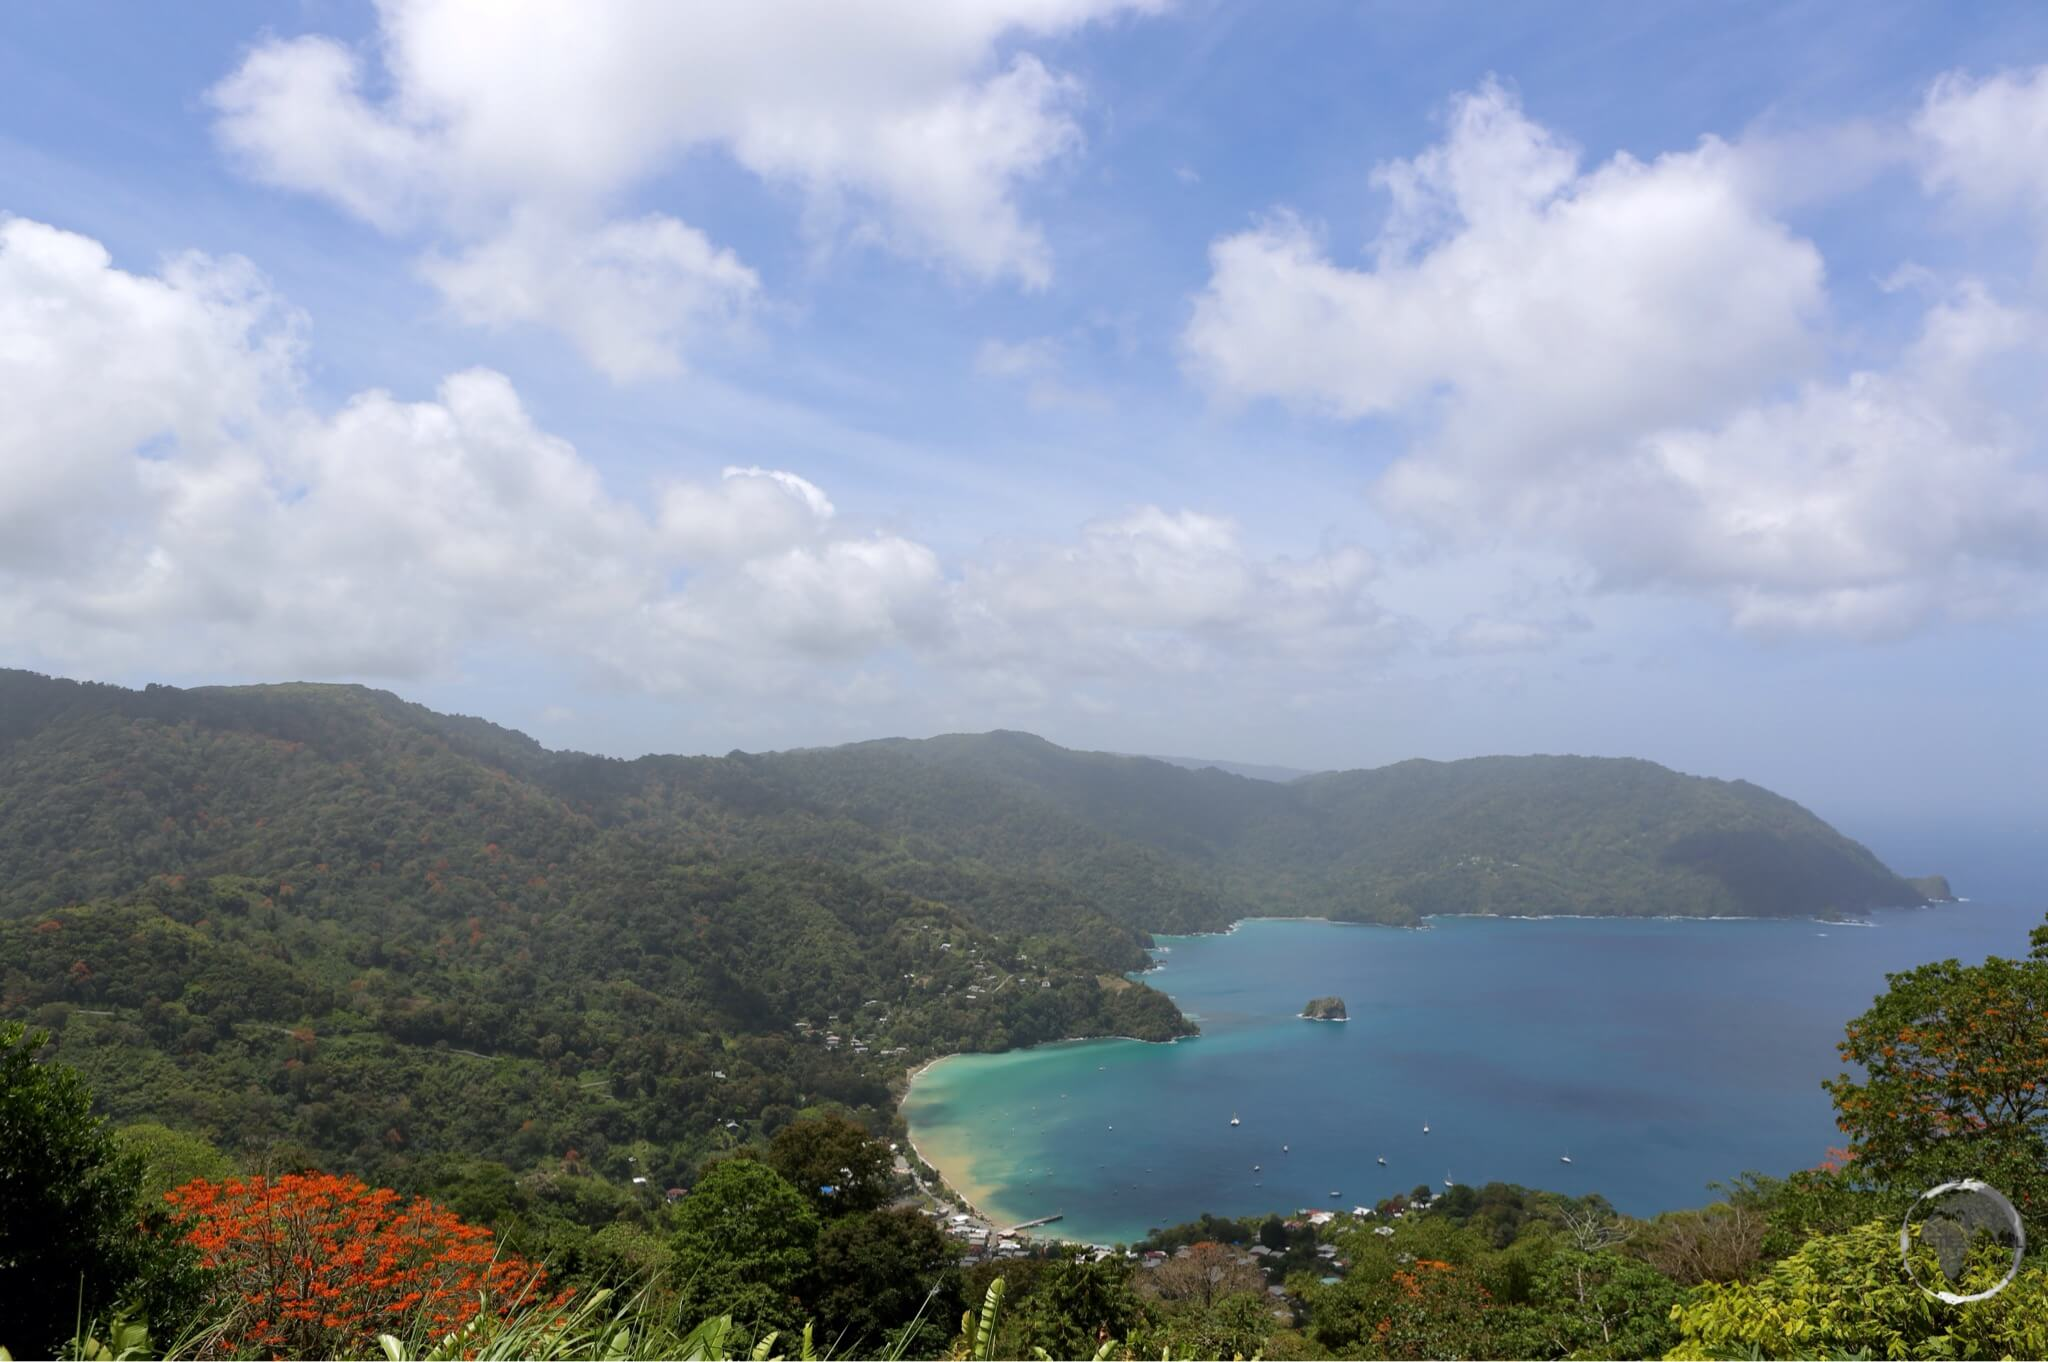 A panoramic view of the North coast of Tobago.